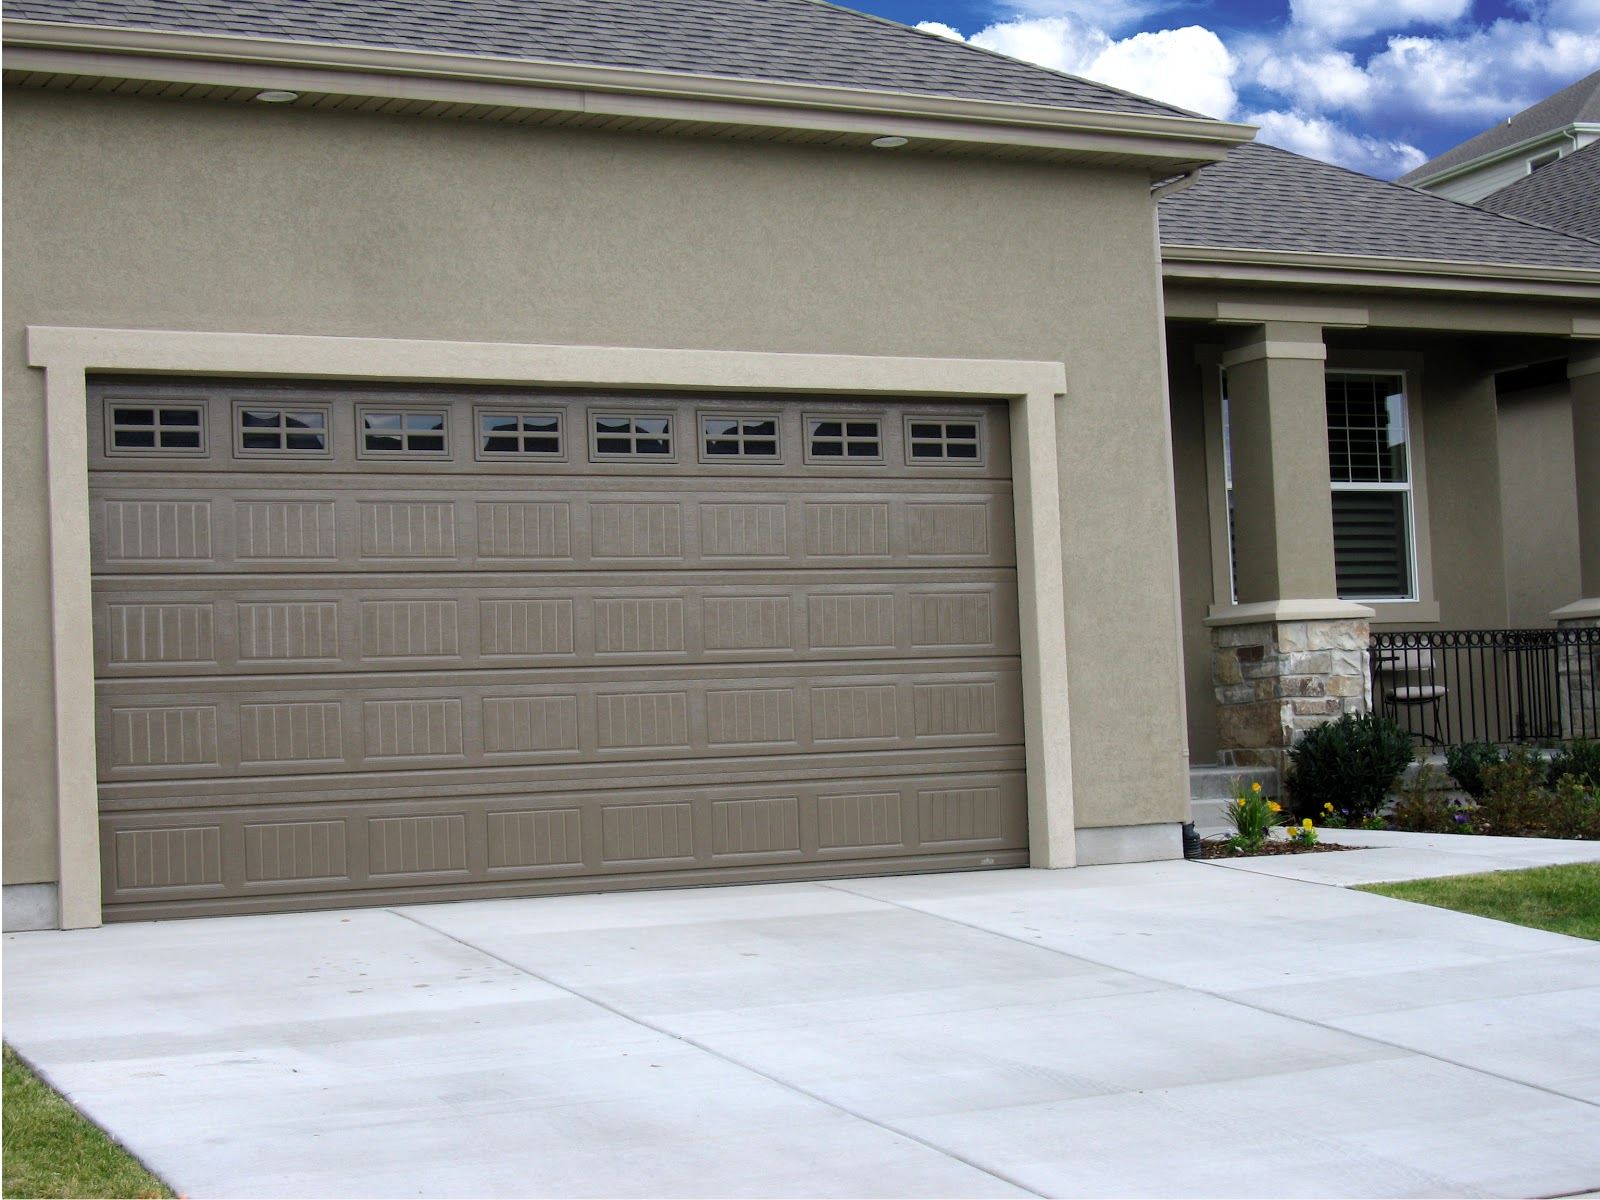 Phoenix Garage Doors: Best Garage Door Company in Phoenix